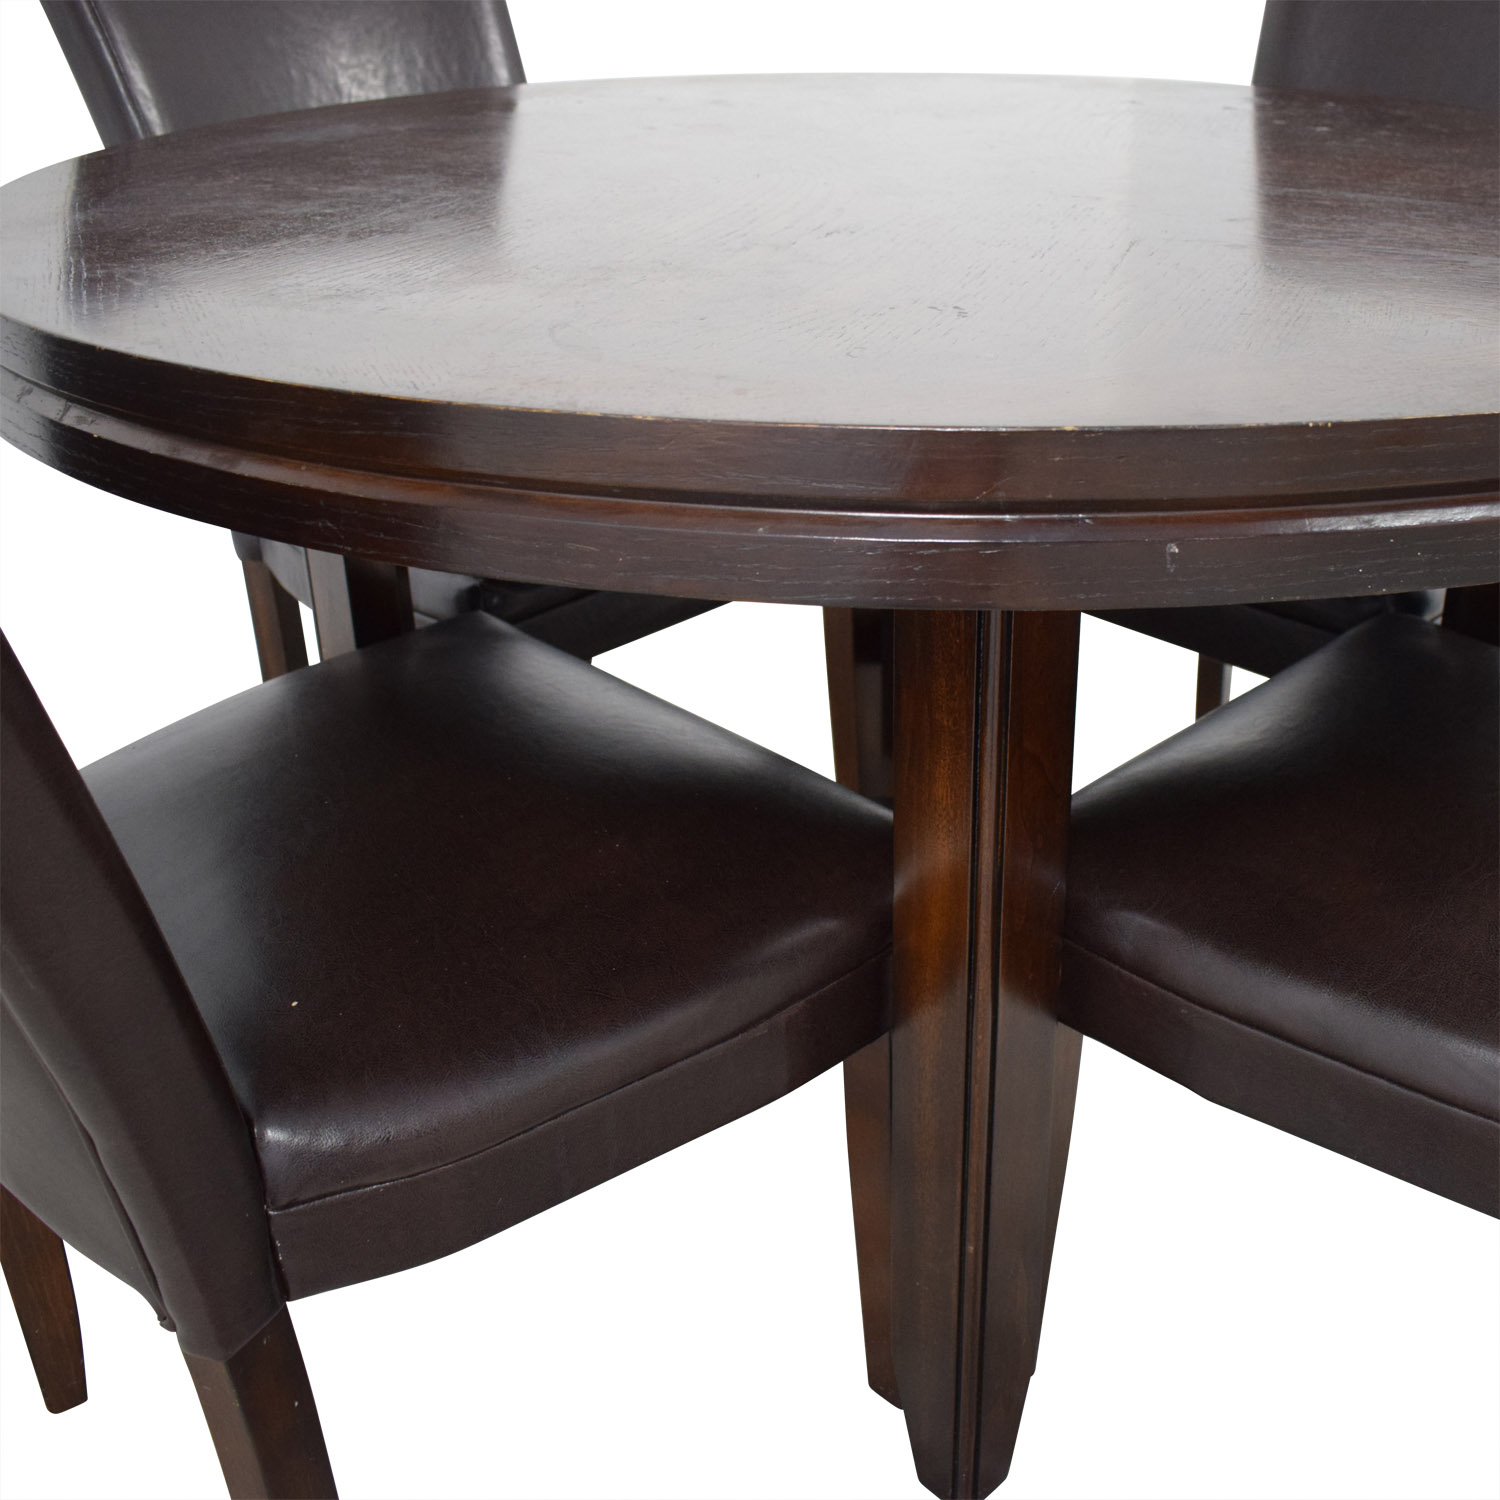 87 OFF  Round Wood Dining Table with Black Leather